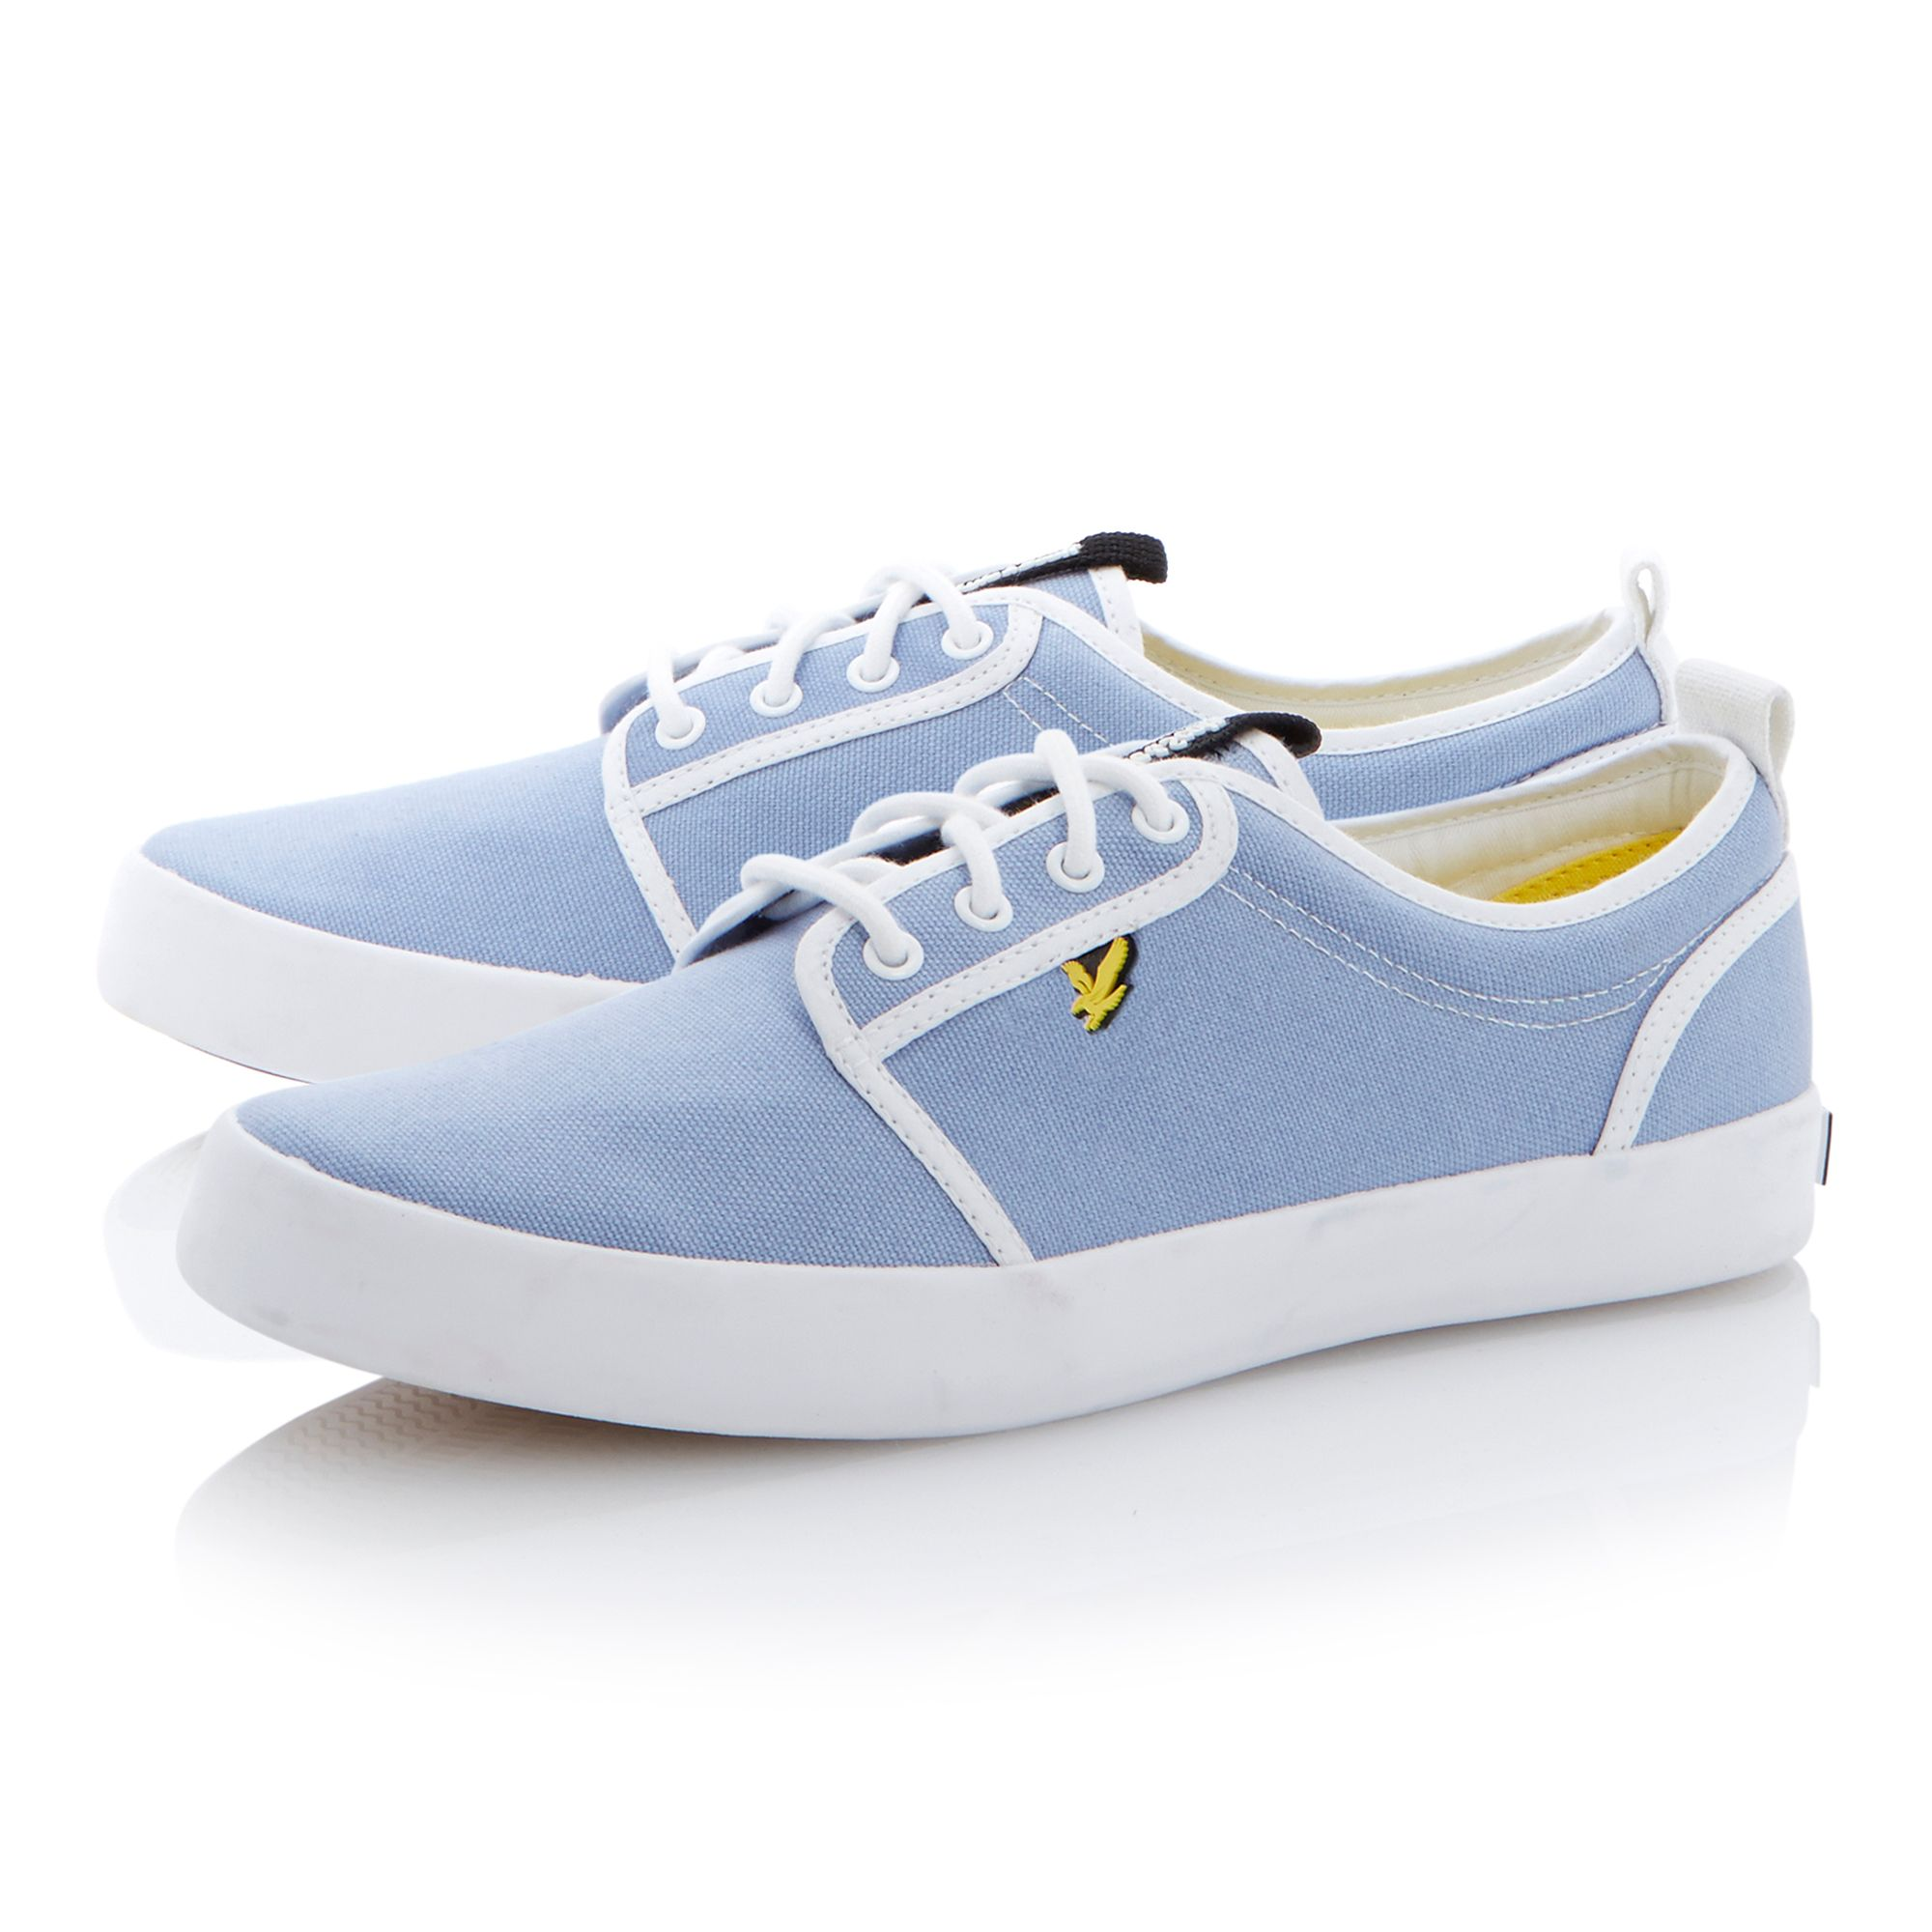 Caol lace up trainers